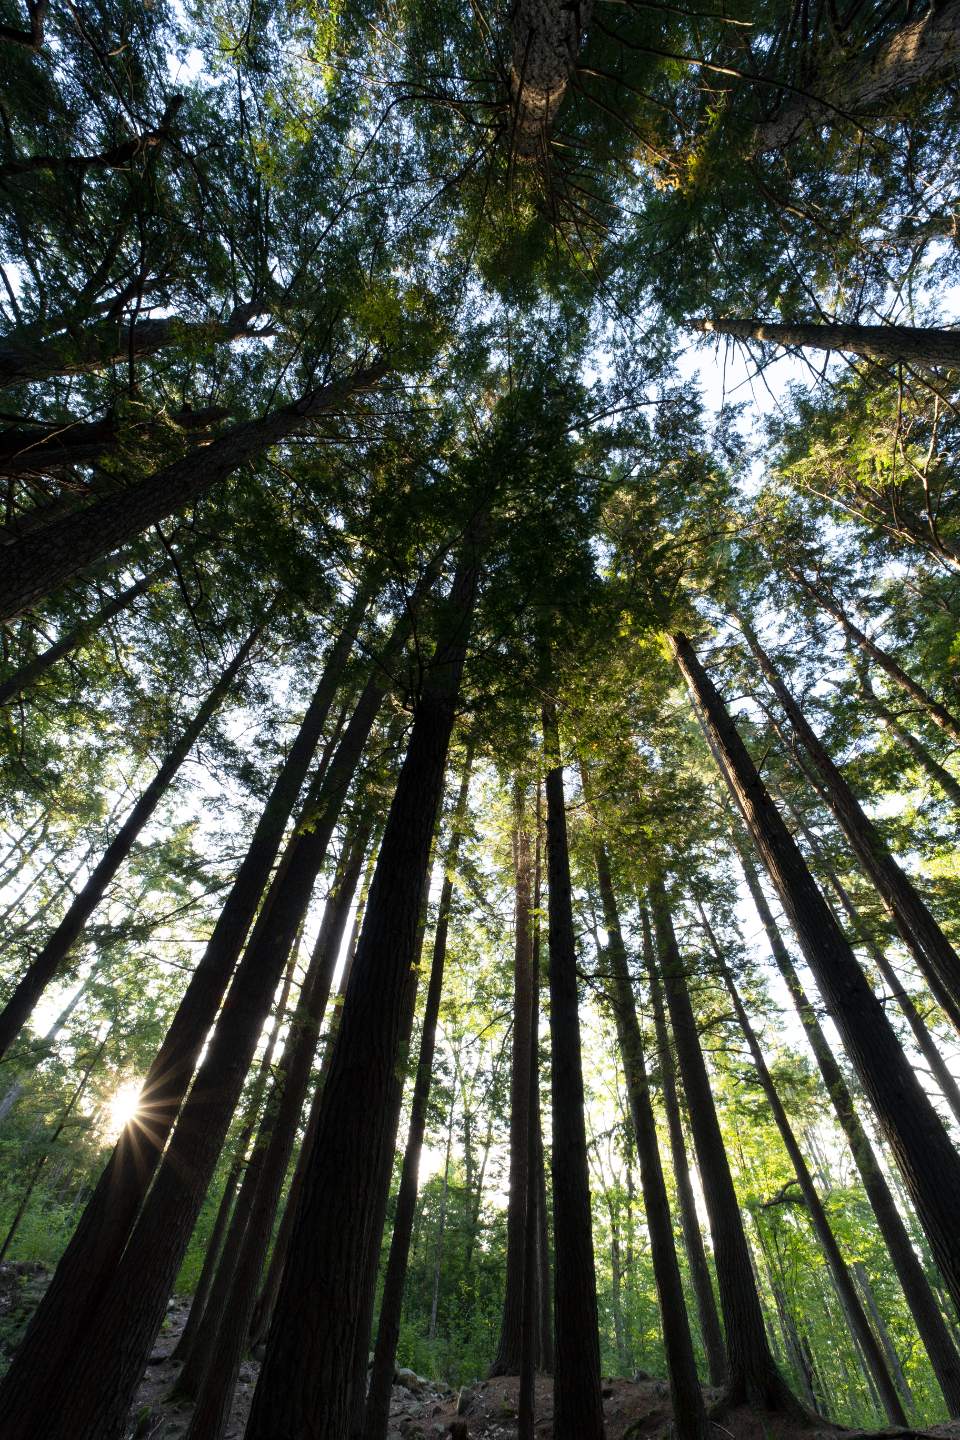 forest sky view tall trees nature growth green outdoors landscape wood environment sun exploring hiking